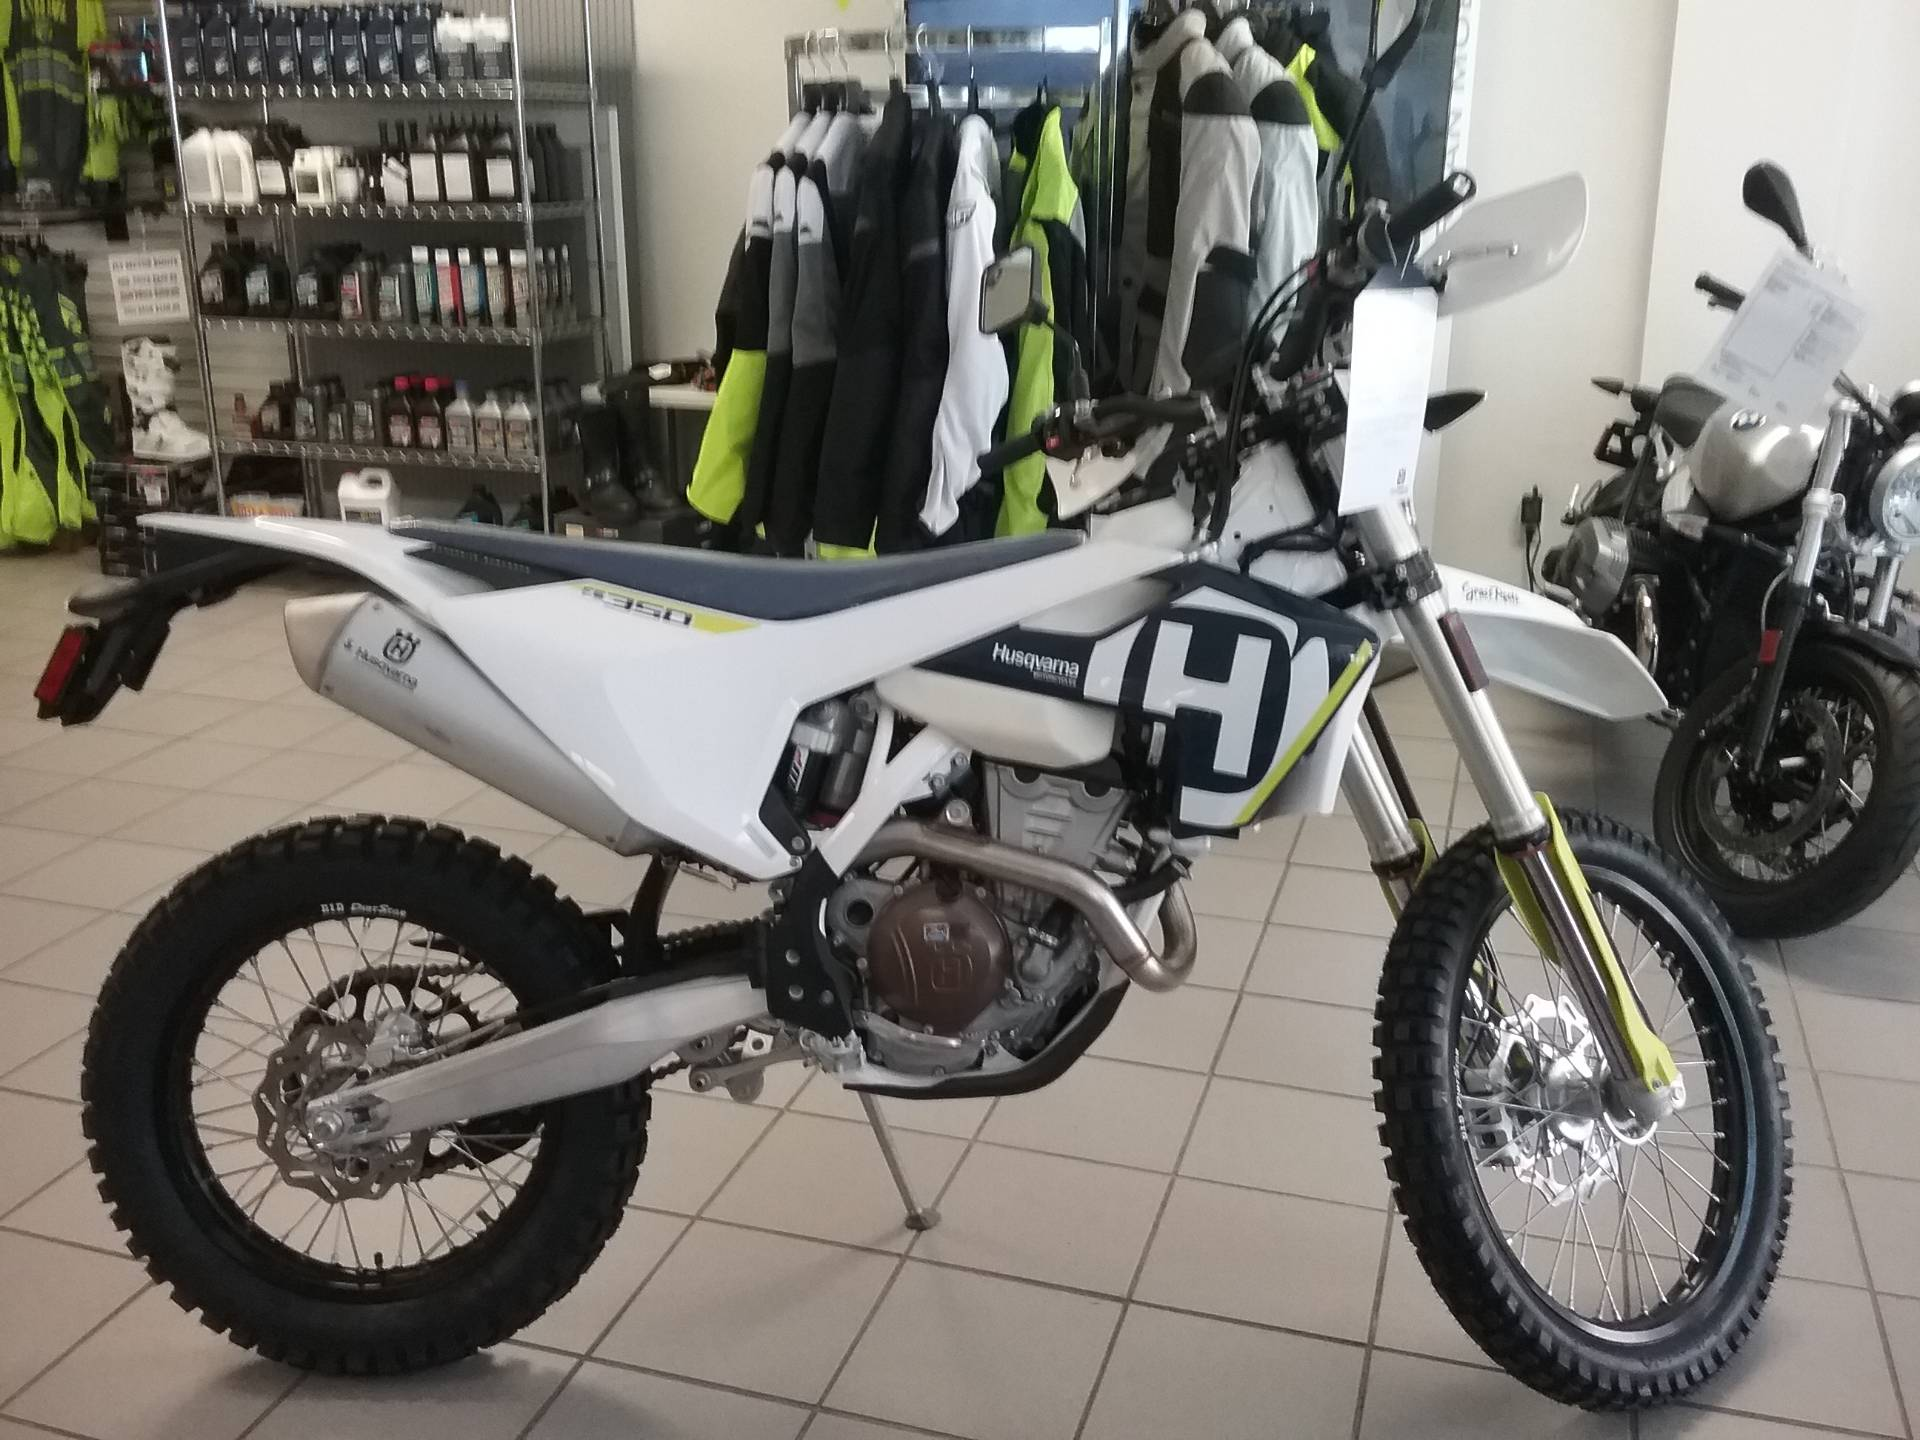 2018 Husqvarna FE 350/350 S in Cape Girardeau, Missouri - Photo 2